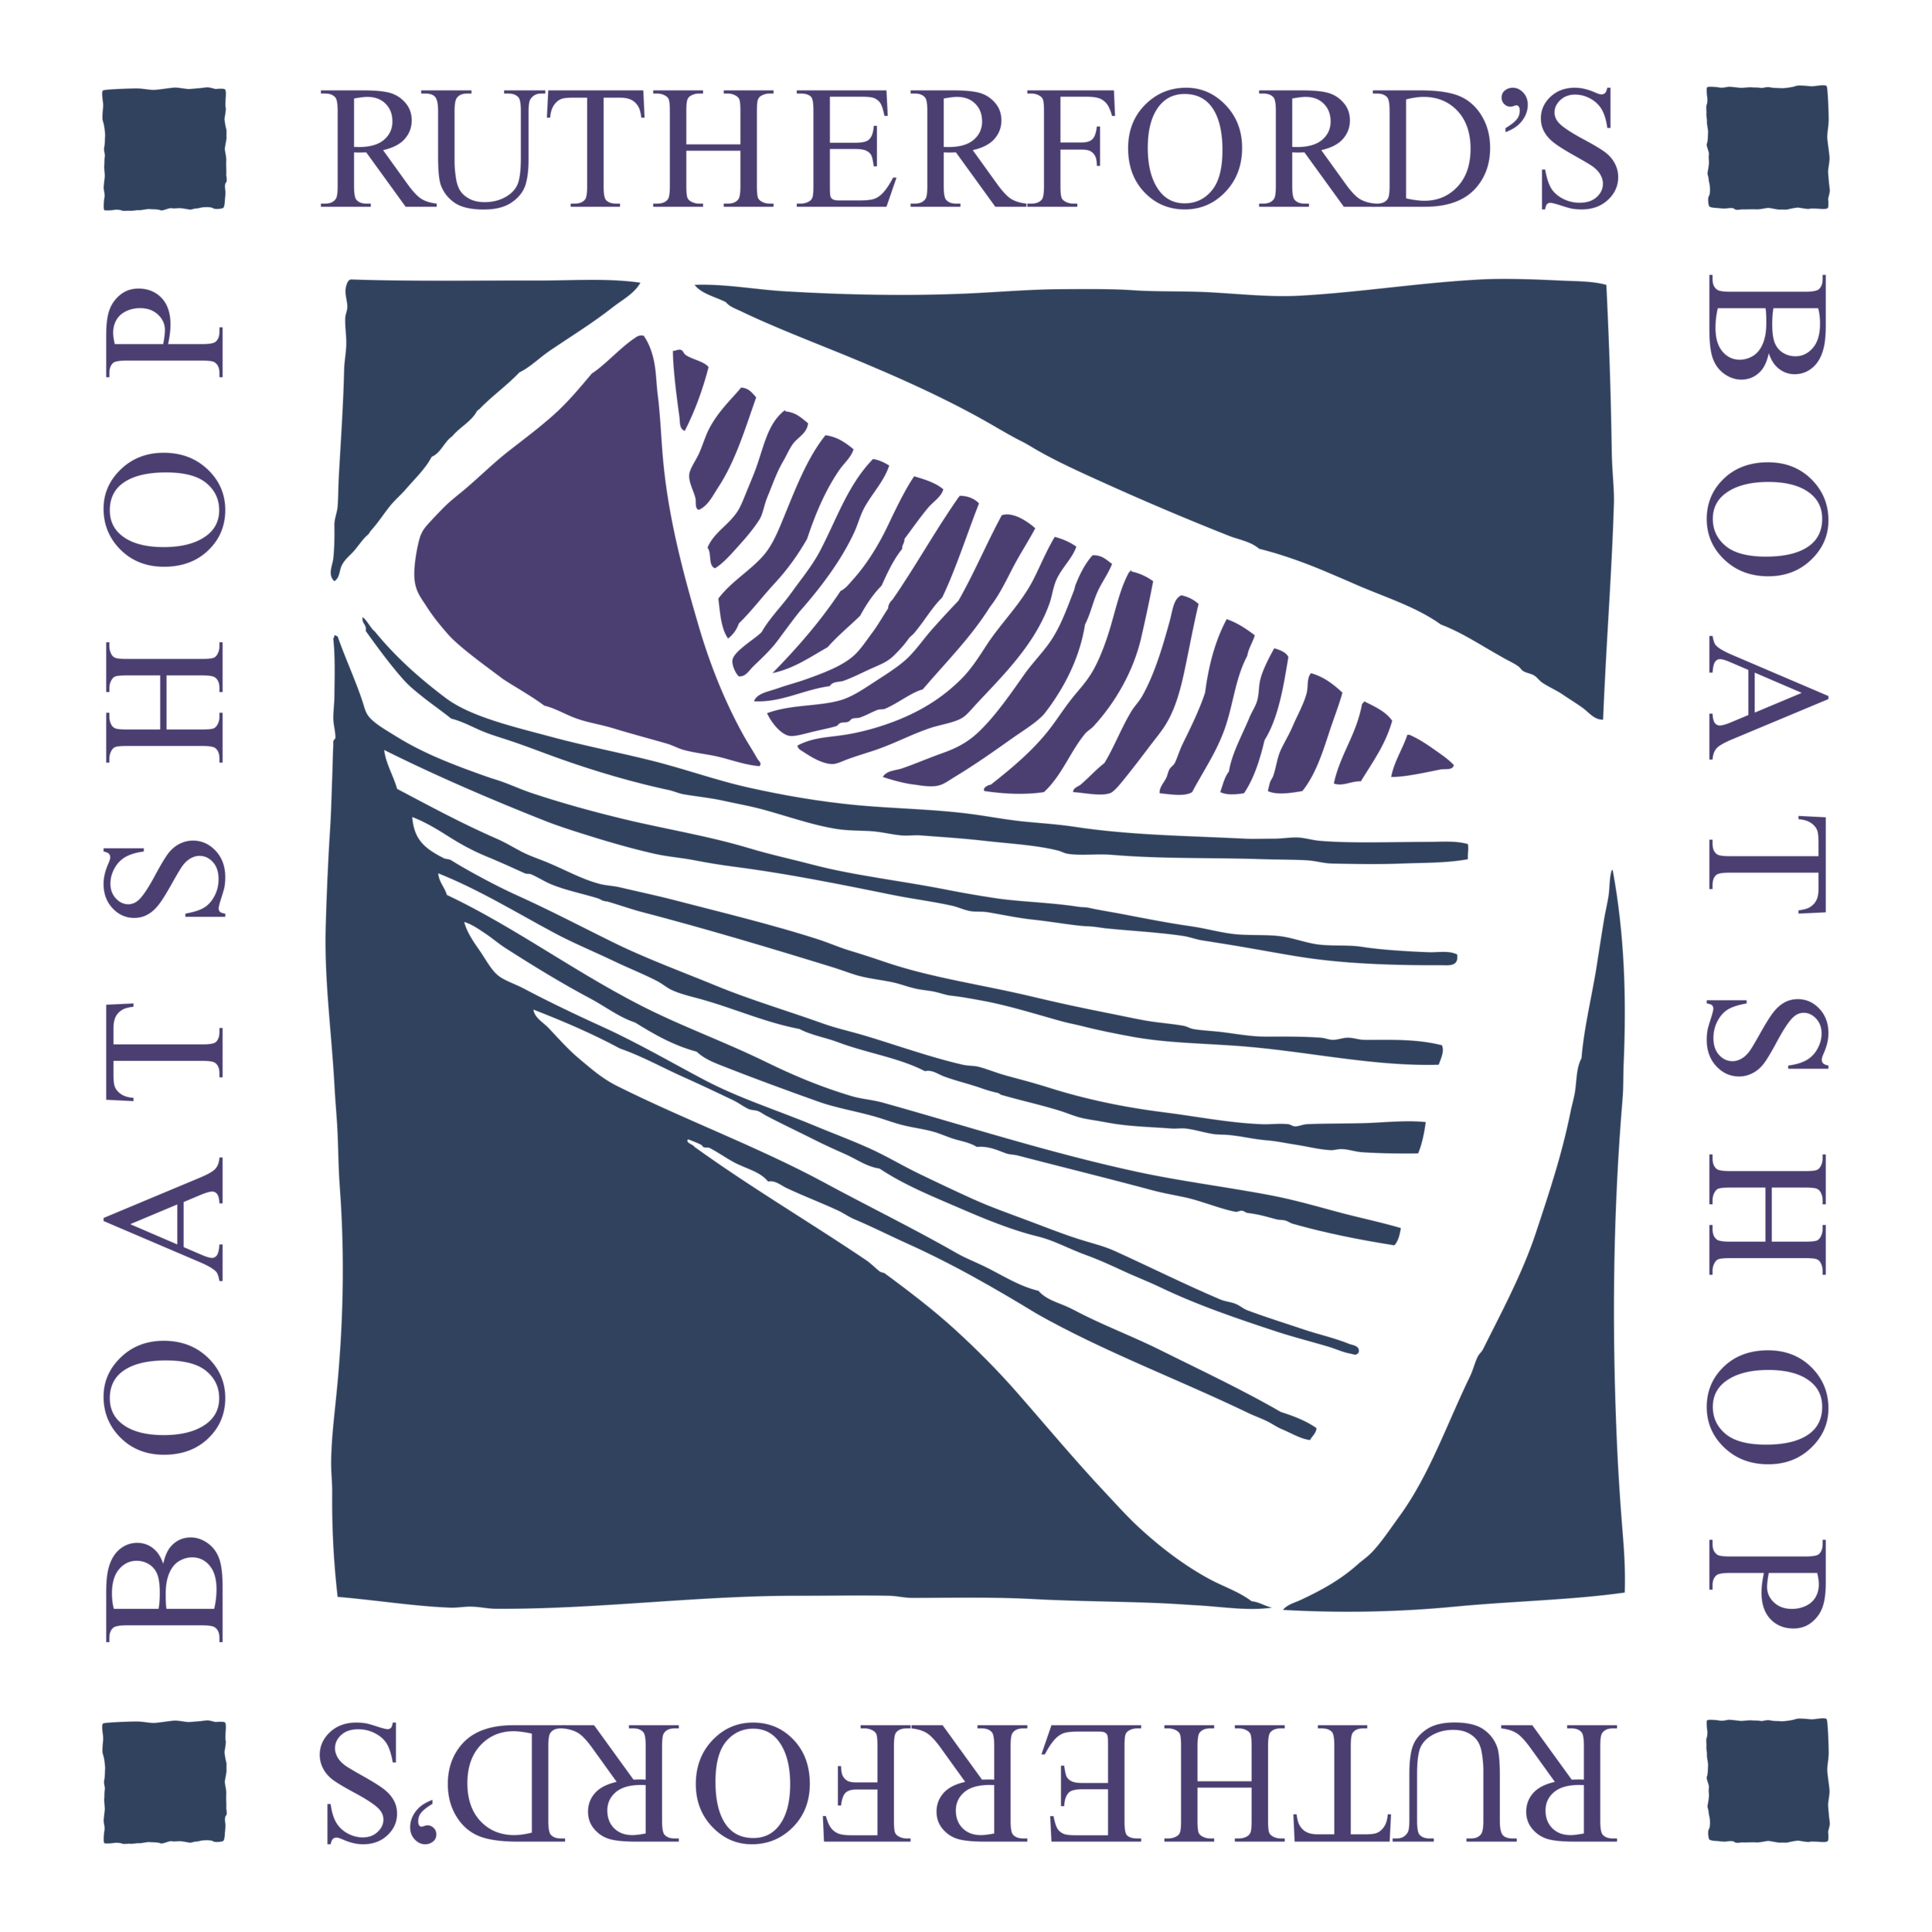 http://www.rutherfordboats.com/